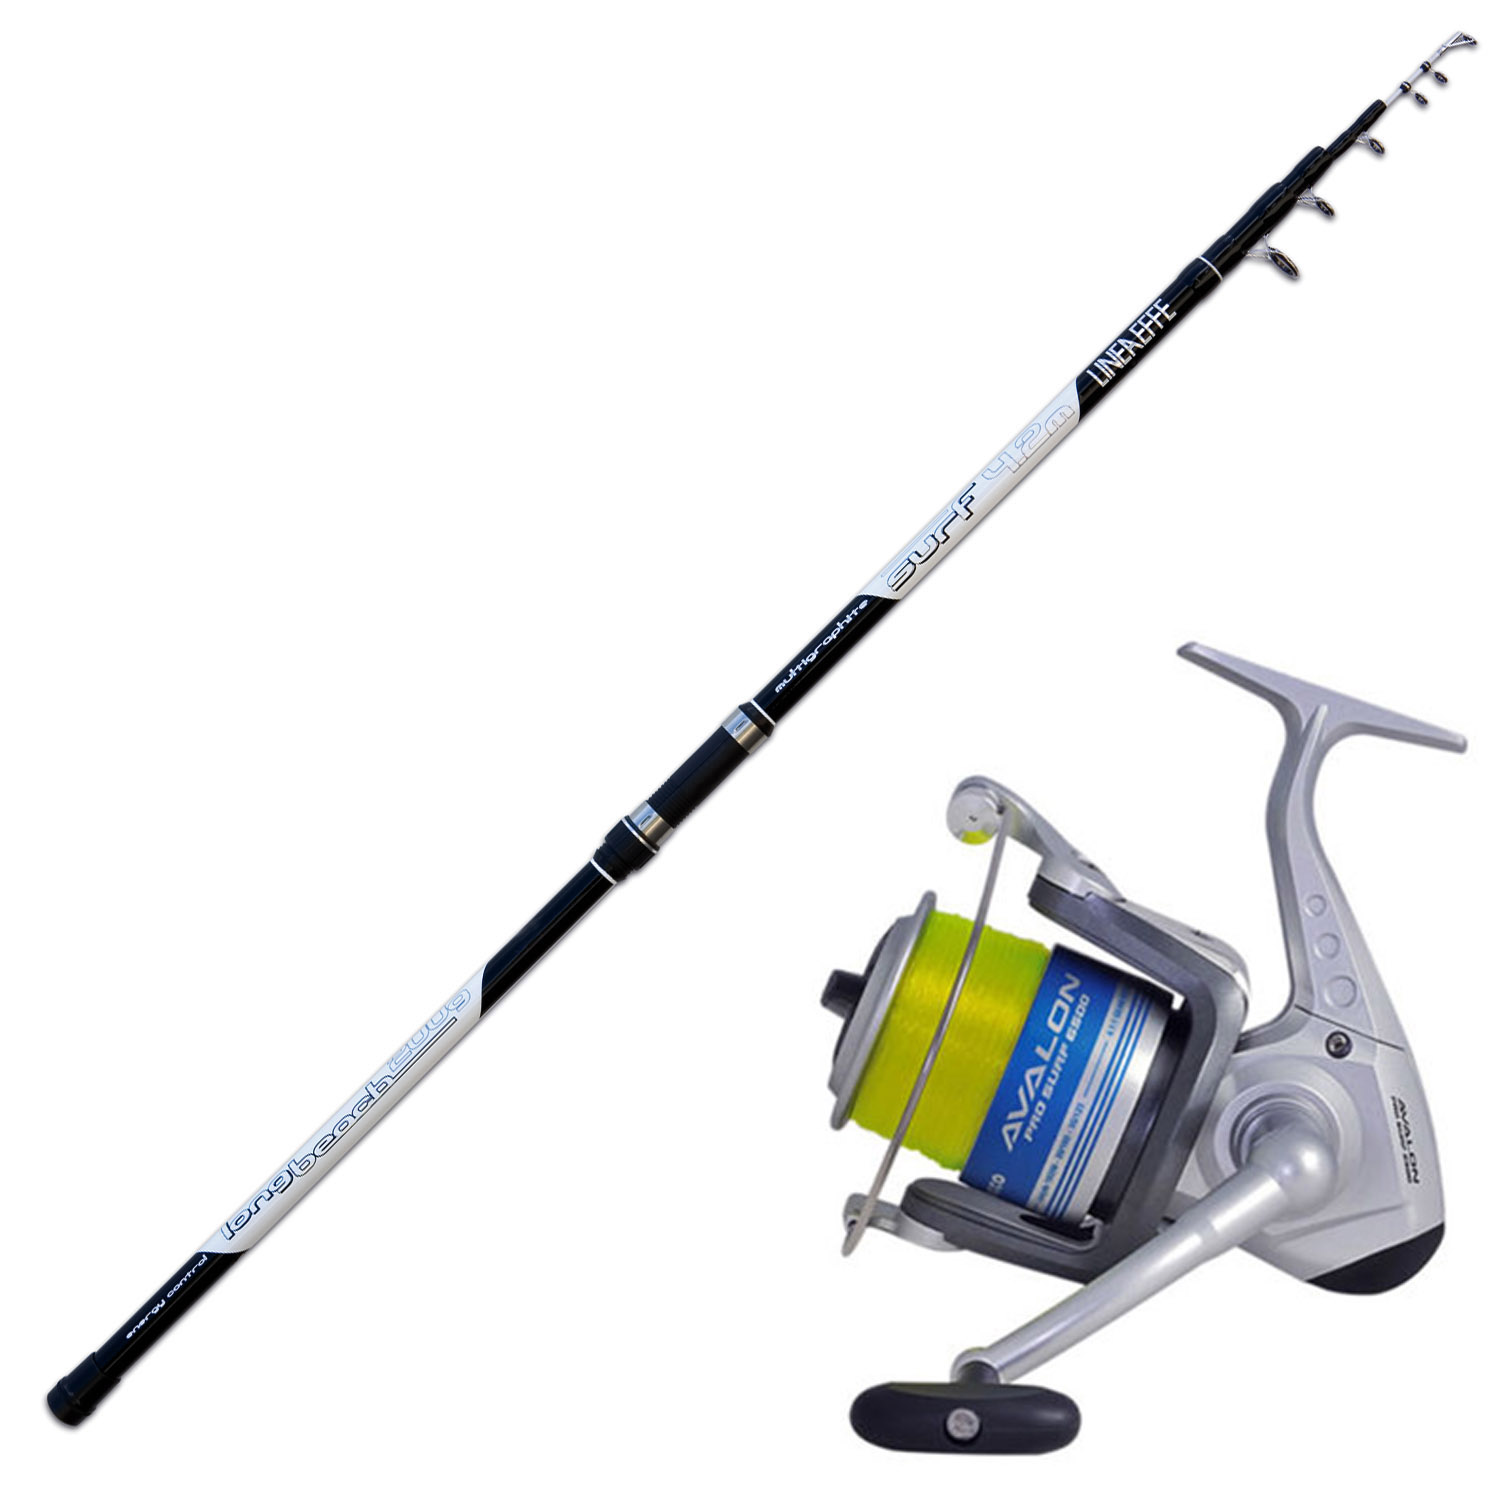 Canna Surf Casting Lead 200 Gr Mulinello Trabucco 65 a1d0330ce8d7